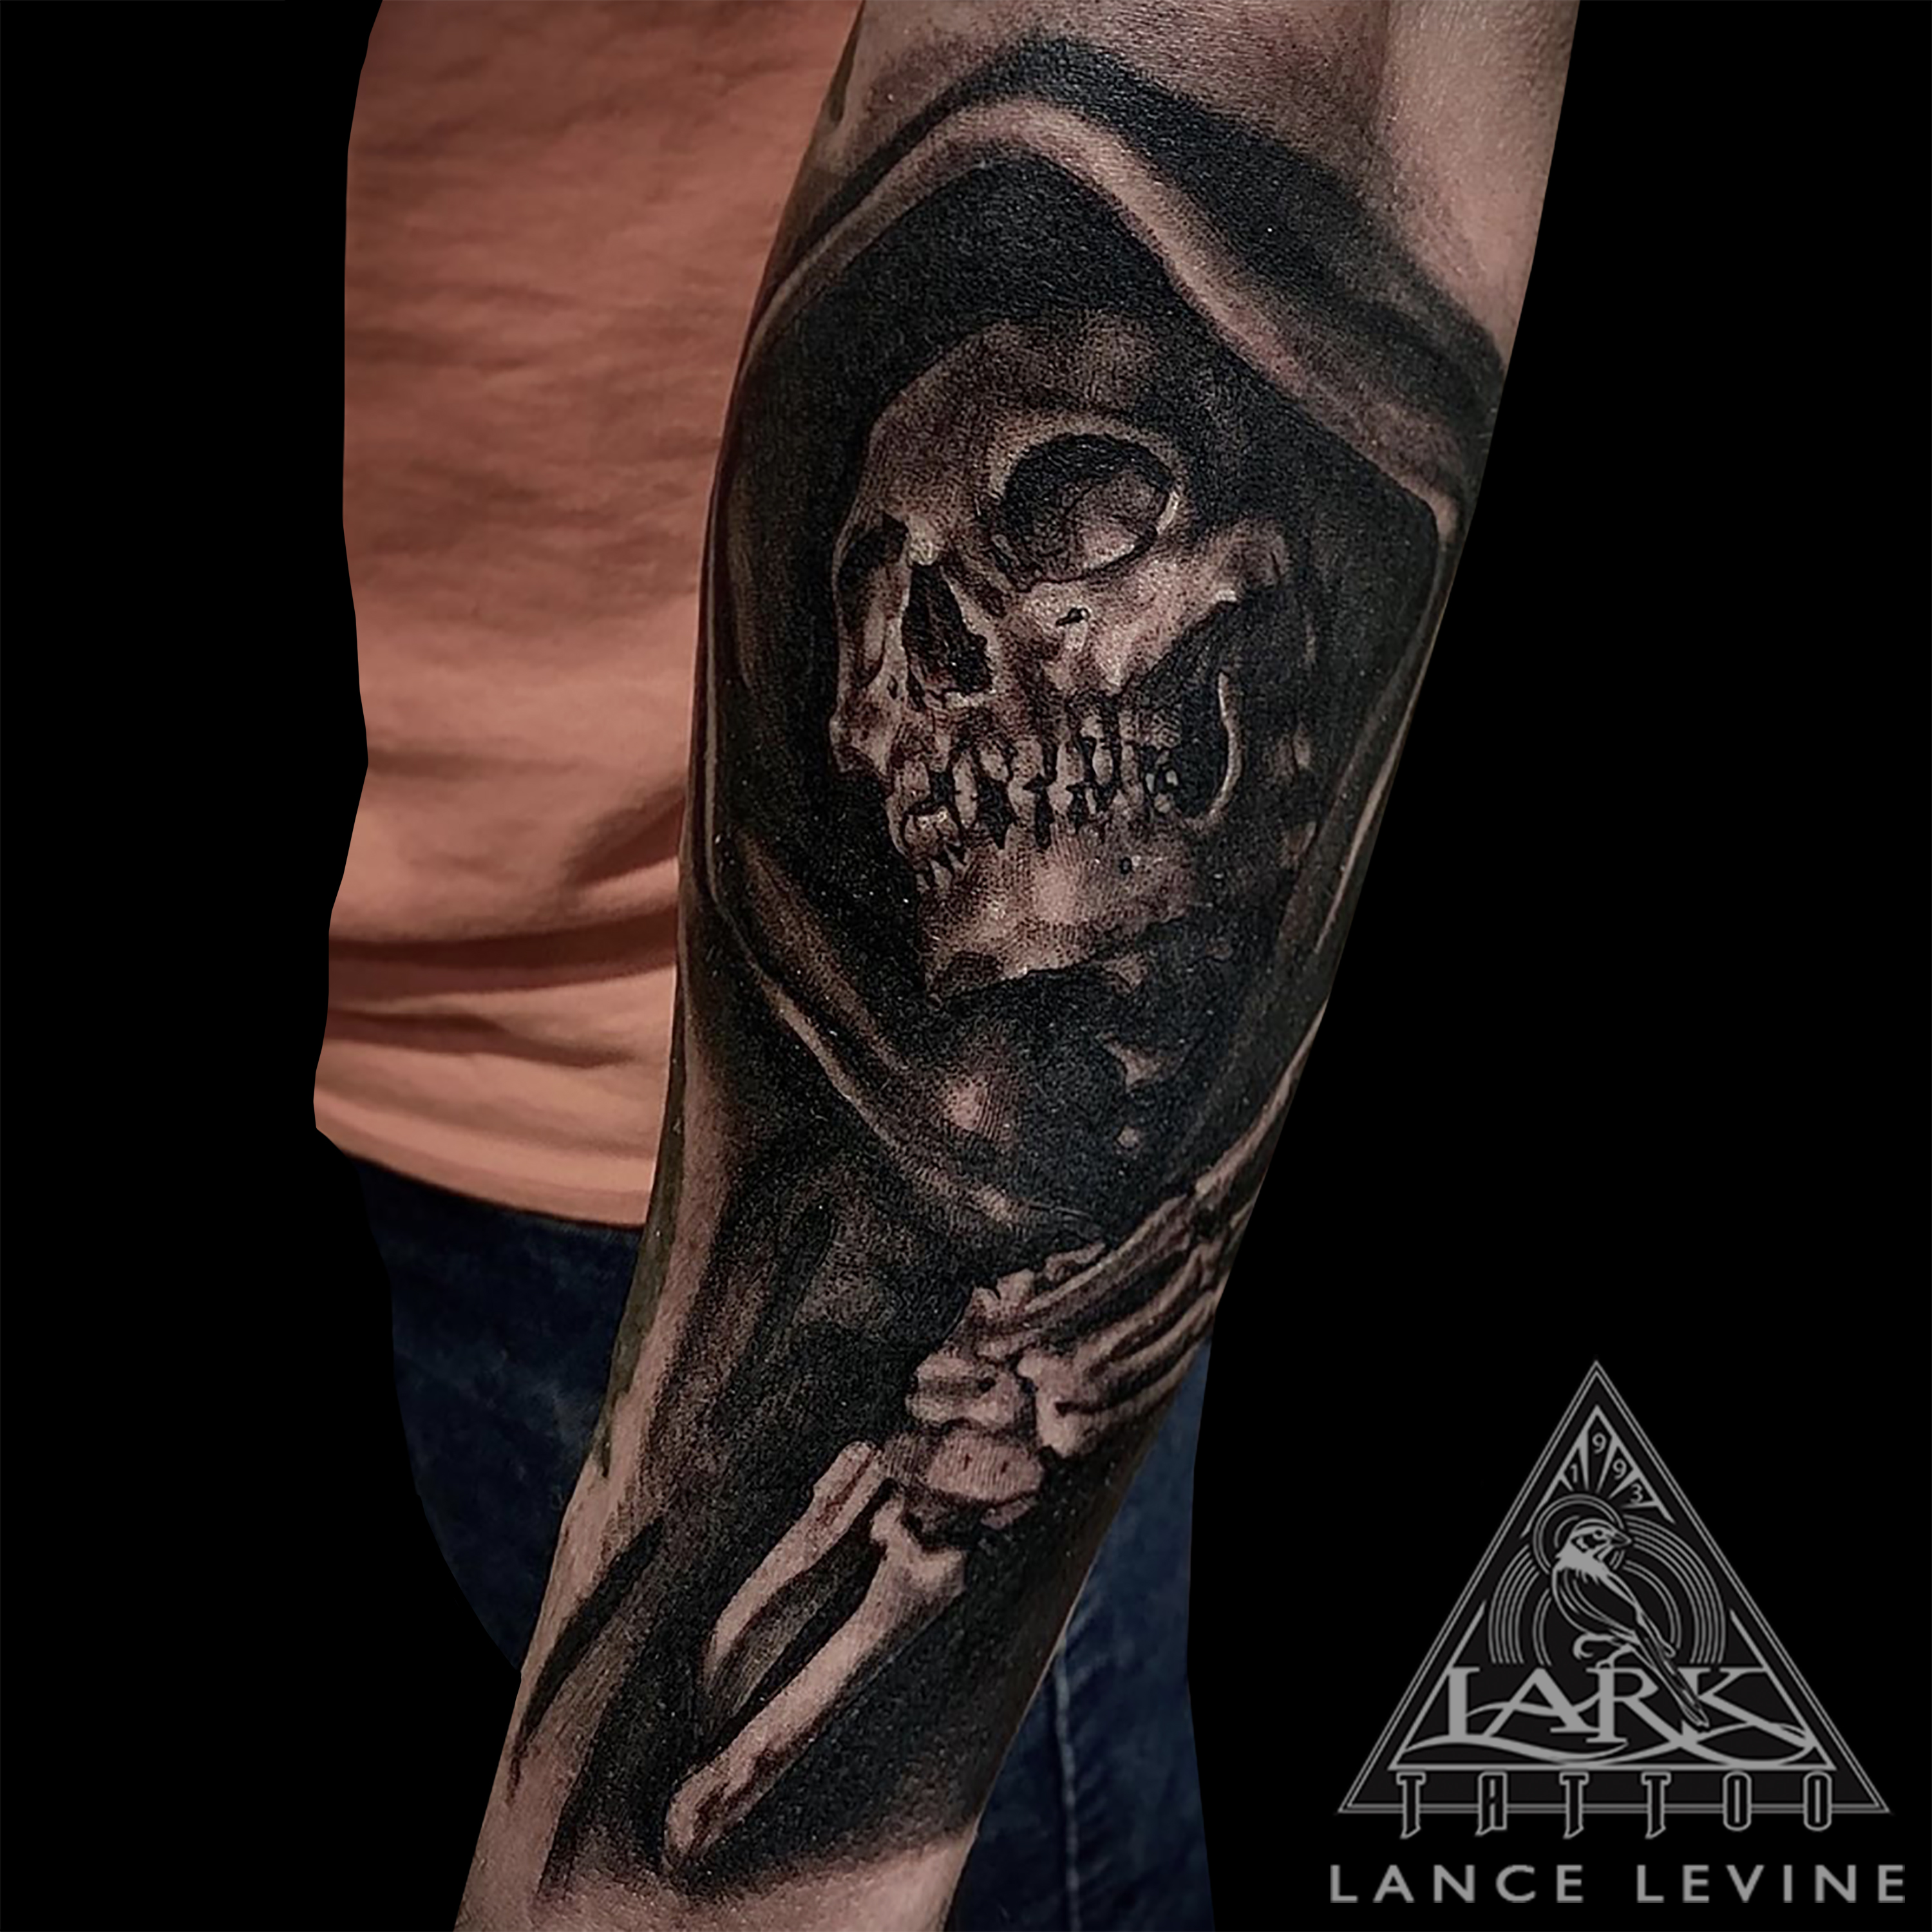 LarkTattoo, LongIslandTattooArtist, LongIslandTattooer, LongIslandTattoo, Tattoo, Tattoos, BNG, BNGTattoo, BNGInkSociety, BlackAndGrey, BlackAndGreyTattoo, BlackAndGray, BlackAndGrayTattoo, GrimReaper, GrimReaperTattoo, Death, DeathTattoo, Skeleton, SkeletonTattoo, Skull, SkullTattoo, RealisticTattoo, RealismTattoo, Realism, SolidInk, SounlSnatcher, SounlSnatcherTattoo, Grim, GrimTattoo, Reaper, ReaperTattoo , TattooArtist, Tattoist, Tattooer , TattooOfTheDay, Tat, Tats, Tatts, Tatted, Inked, Ink, TattooInk, AmazingInk, AmazingTattoo, BodyArt, LarkTattooWestbury, Westbury, LongIsland, NY, NewYork, USA, Art, Tattedup, InkedUp, LarkTattoos